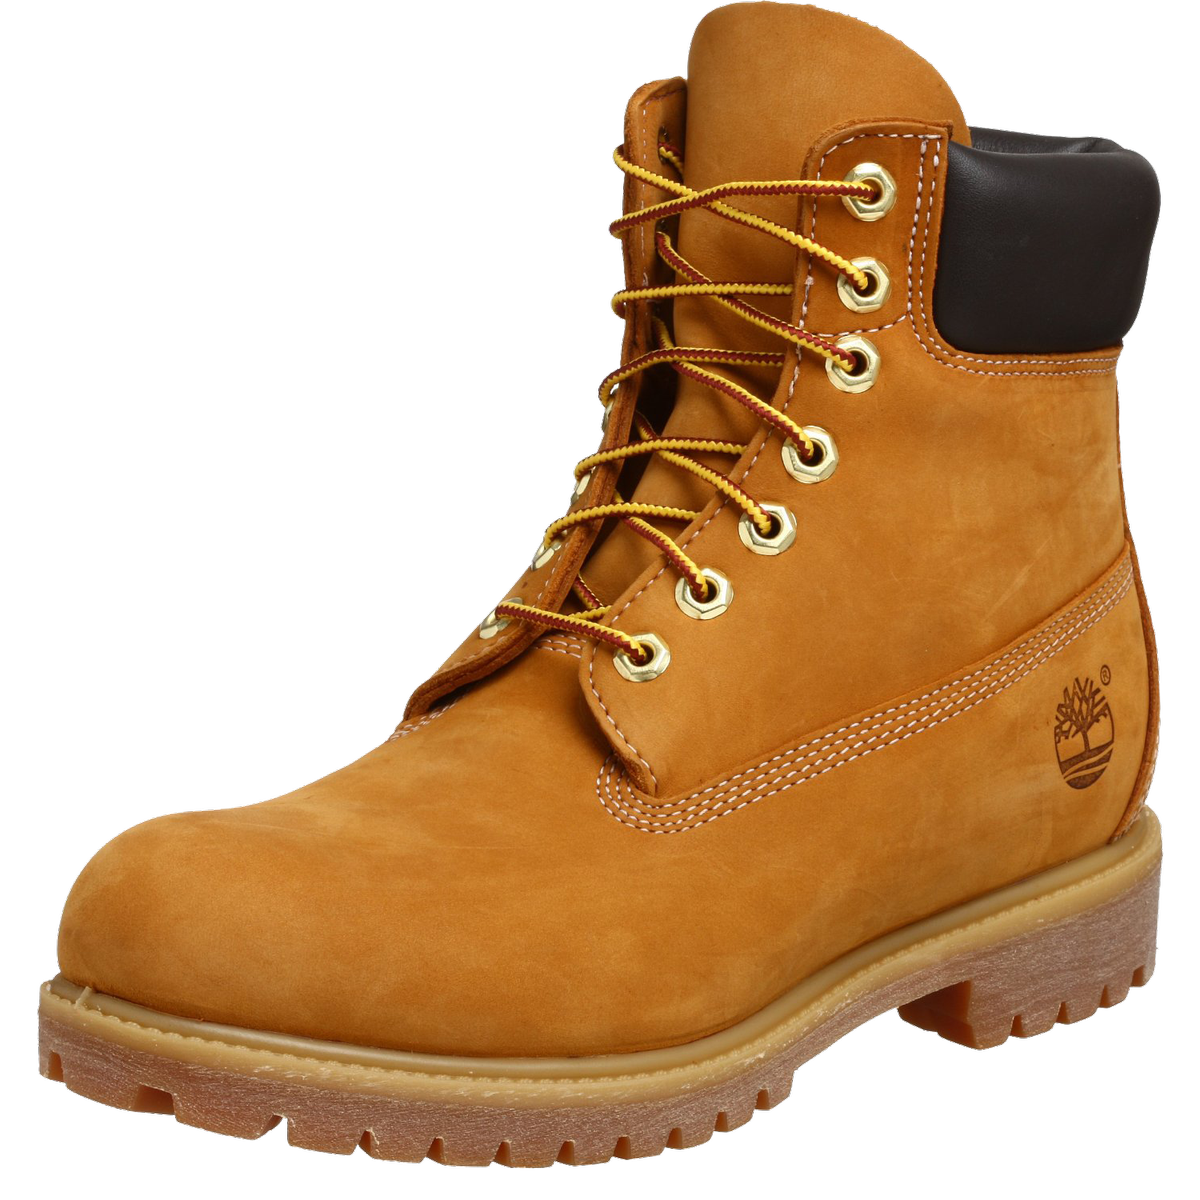 Timbs png. Fa fashion